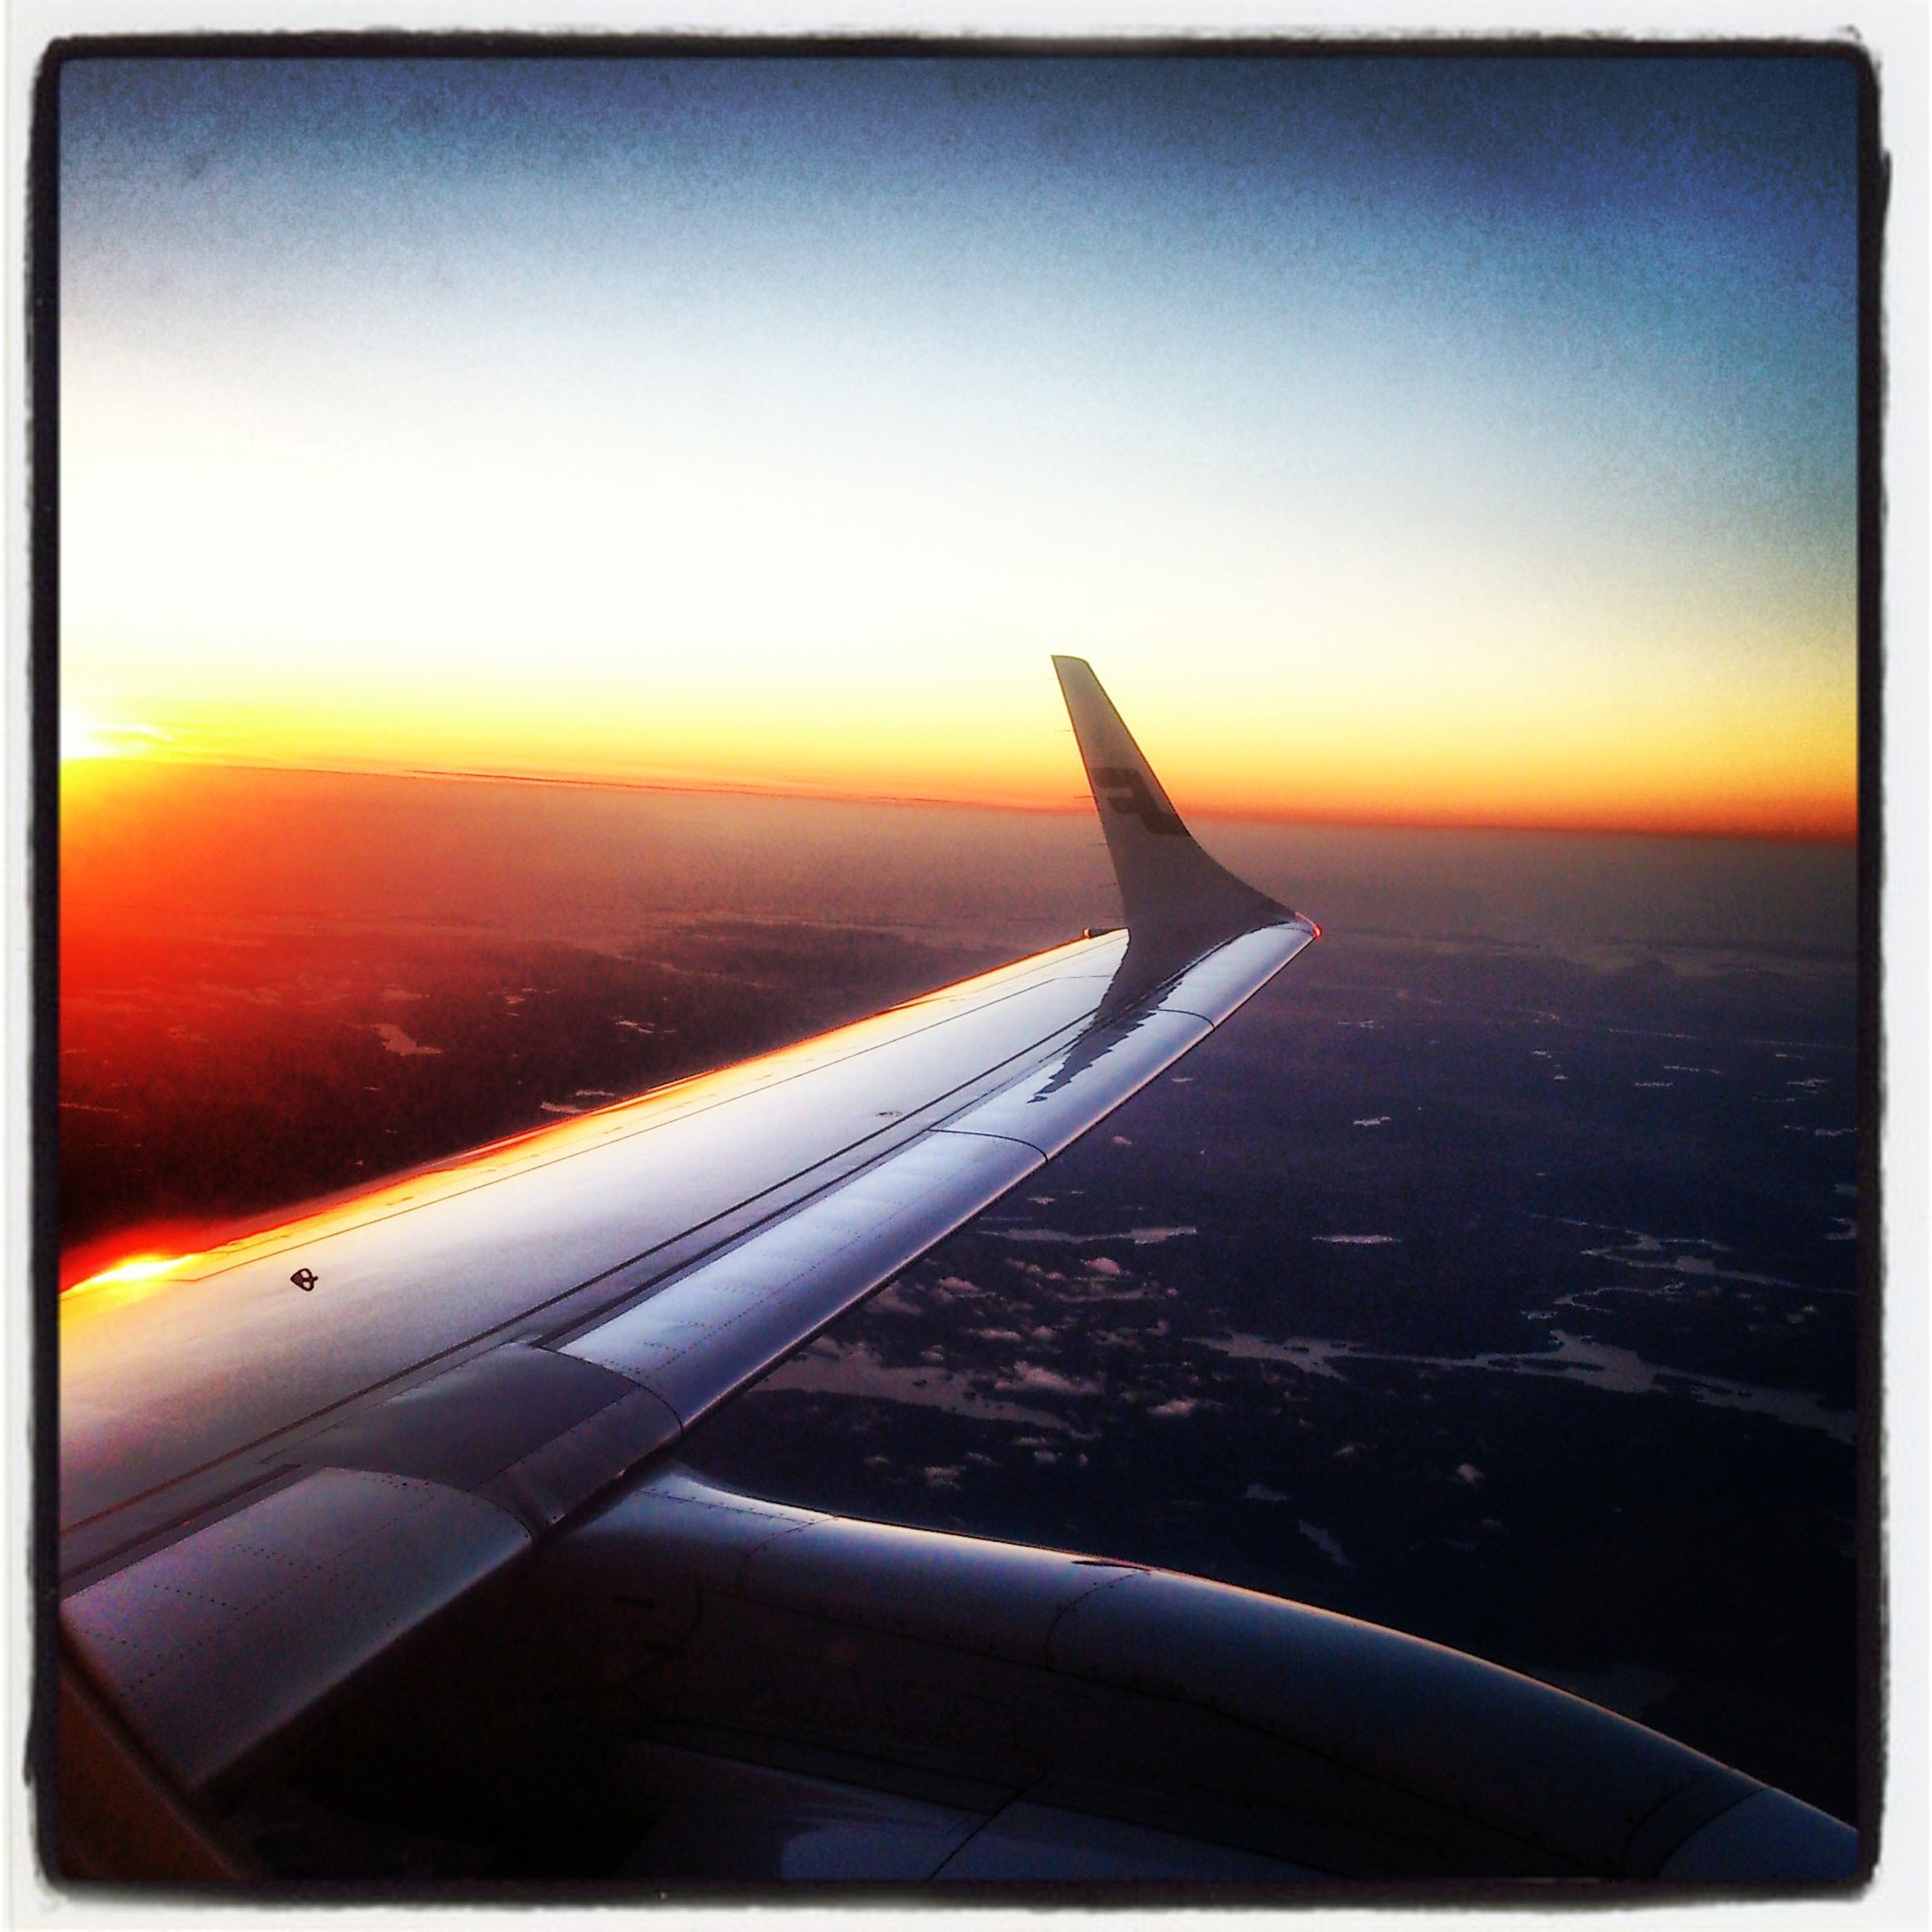 flying, transportation, airplane, sunset, aircraft wing, air vehicle, mode of transport, sky, mid-air, travel, part of, on the move, journey, landscape, scenics, orange color, beauty in nature, nature, cropped, airplane wing